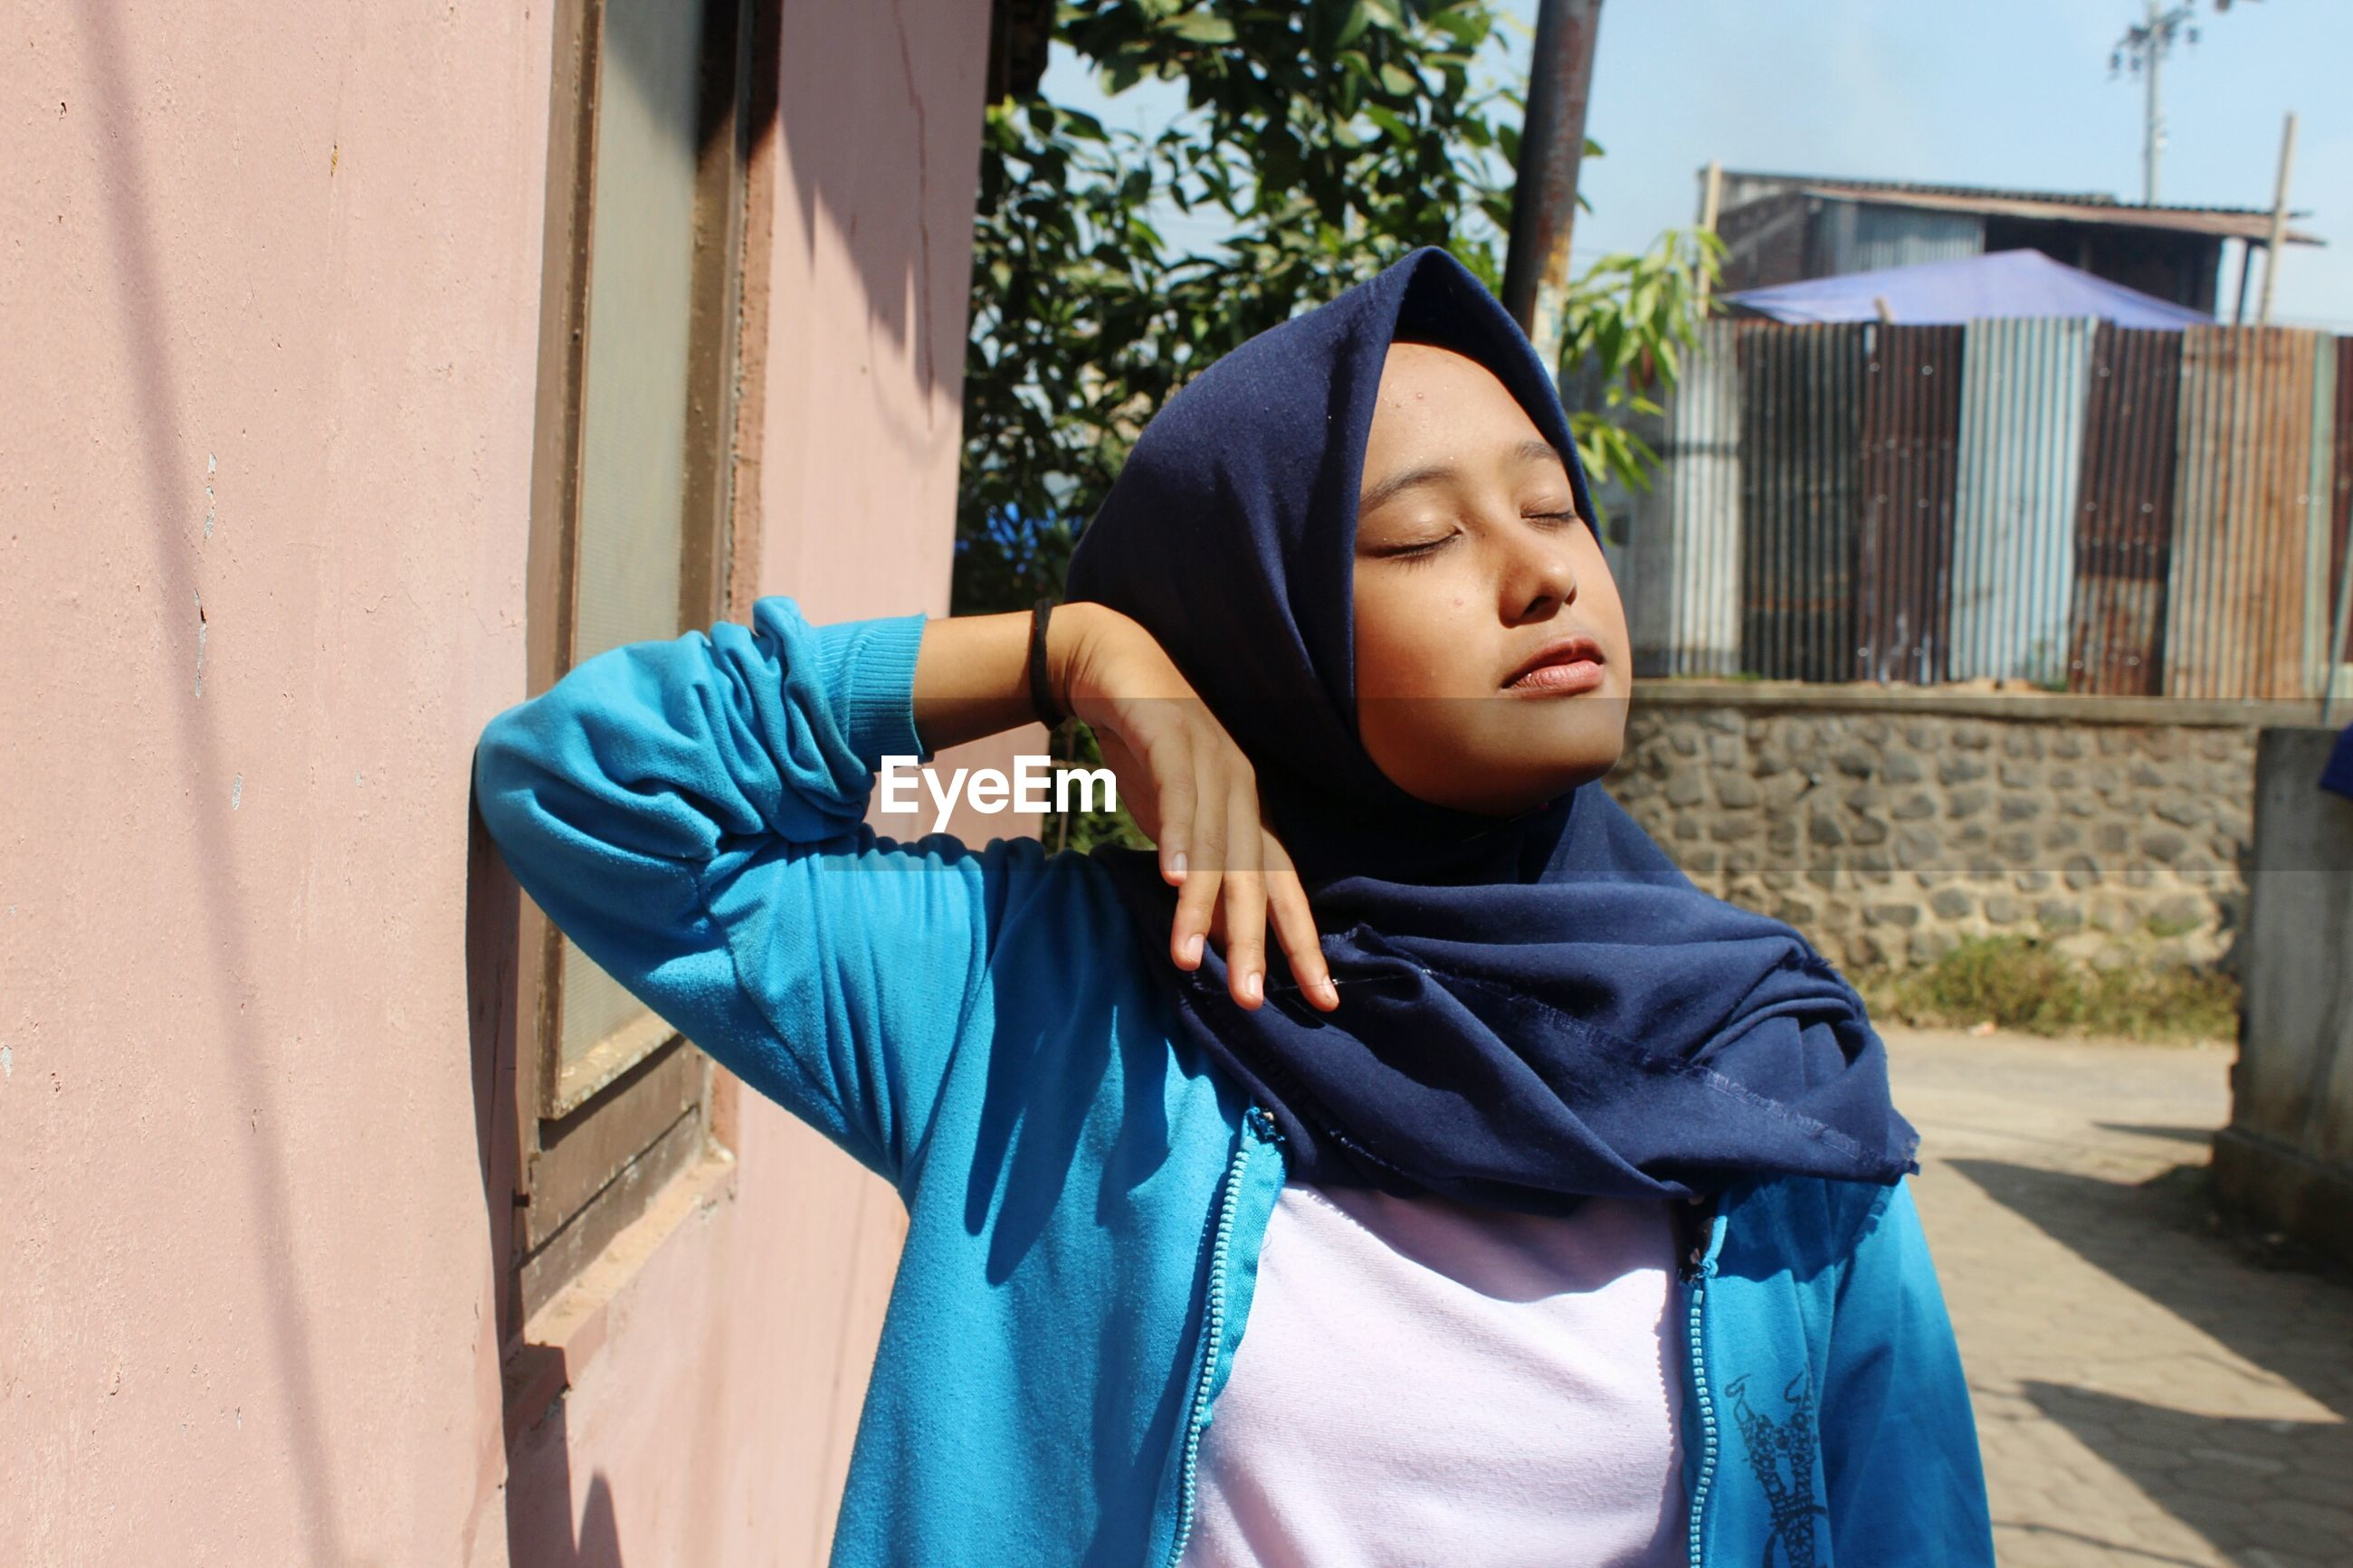 Young woman with eyes closed wearing hijab by house